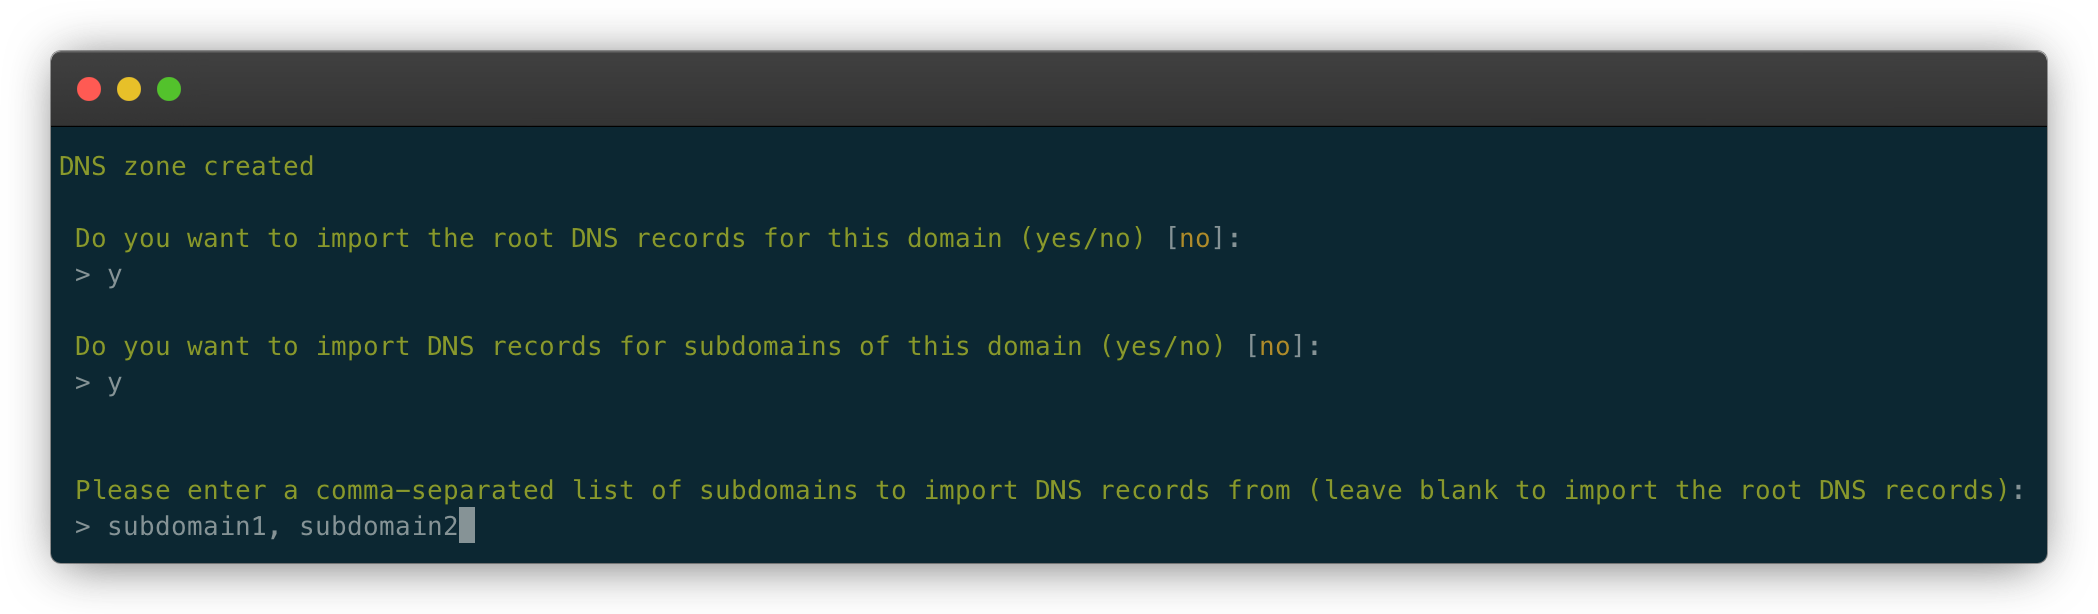 import dns records